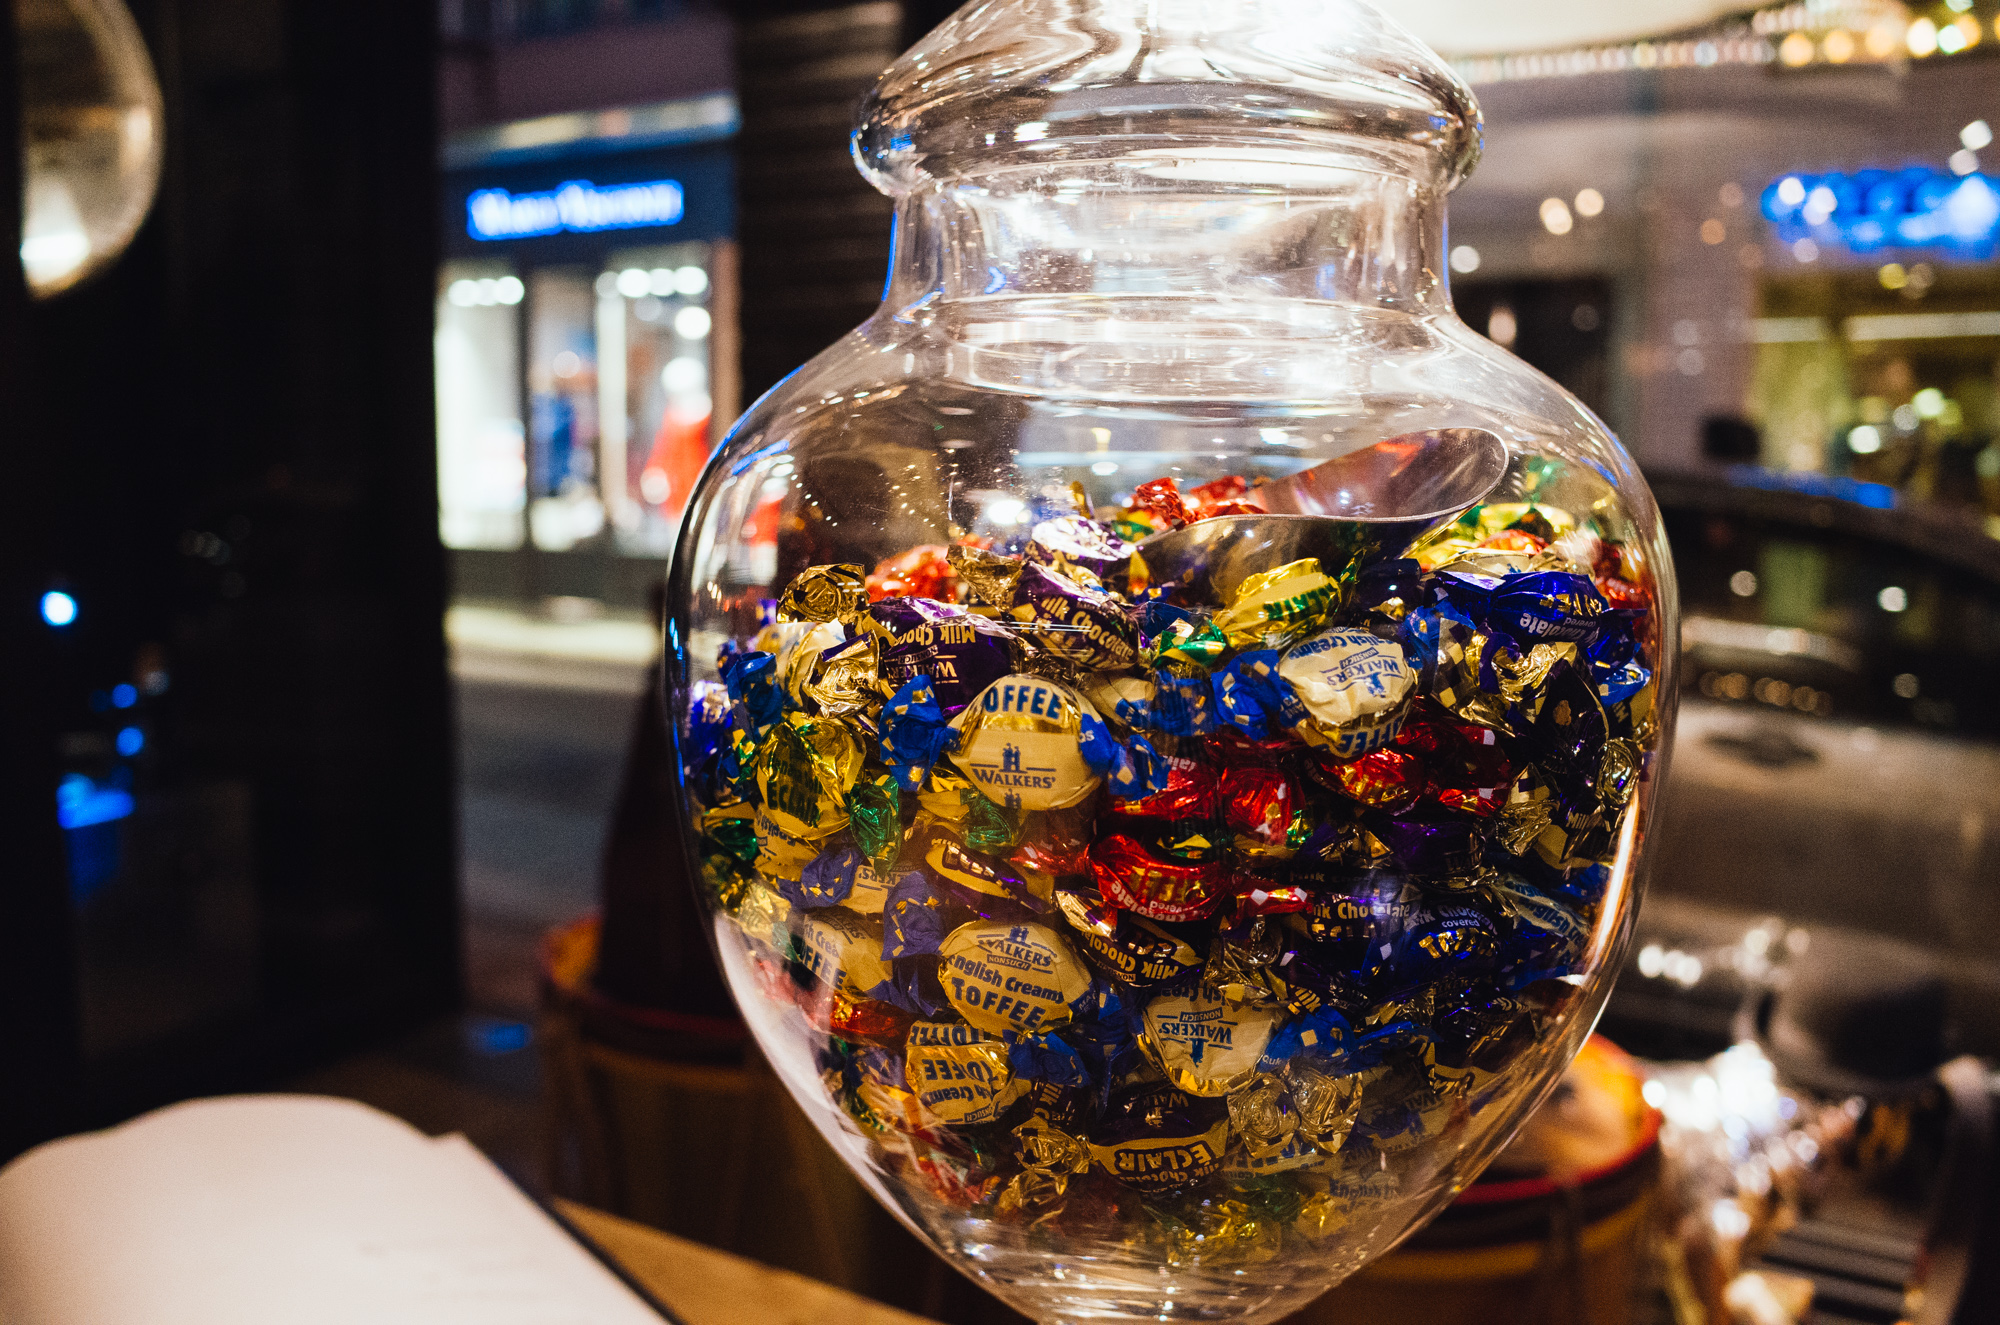 Our time admiring the goods of Timothy Oulton were concluded by a lovely stash of sweets, which the employees were more than happy to give us.